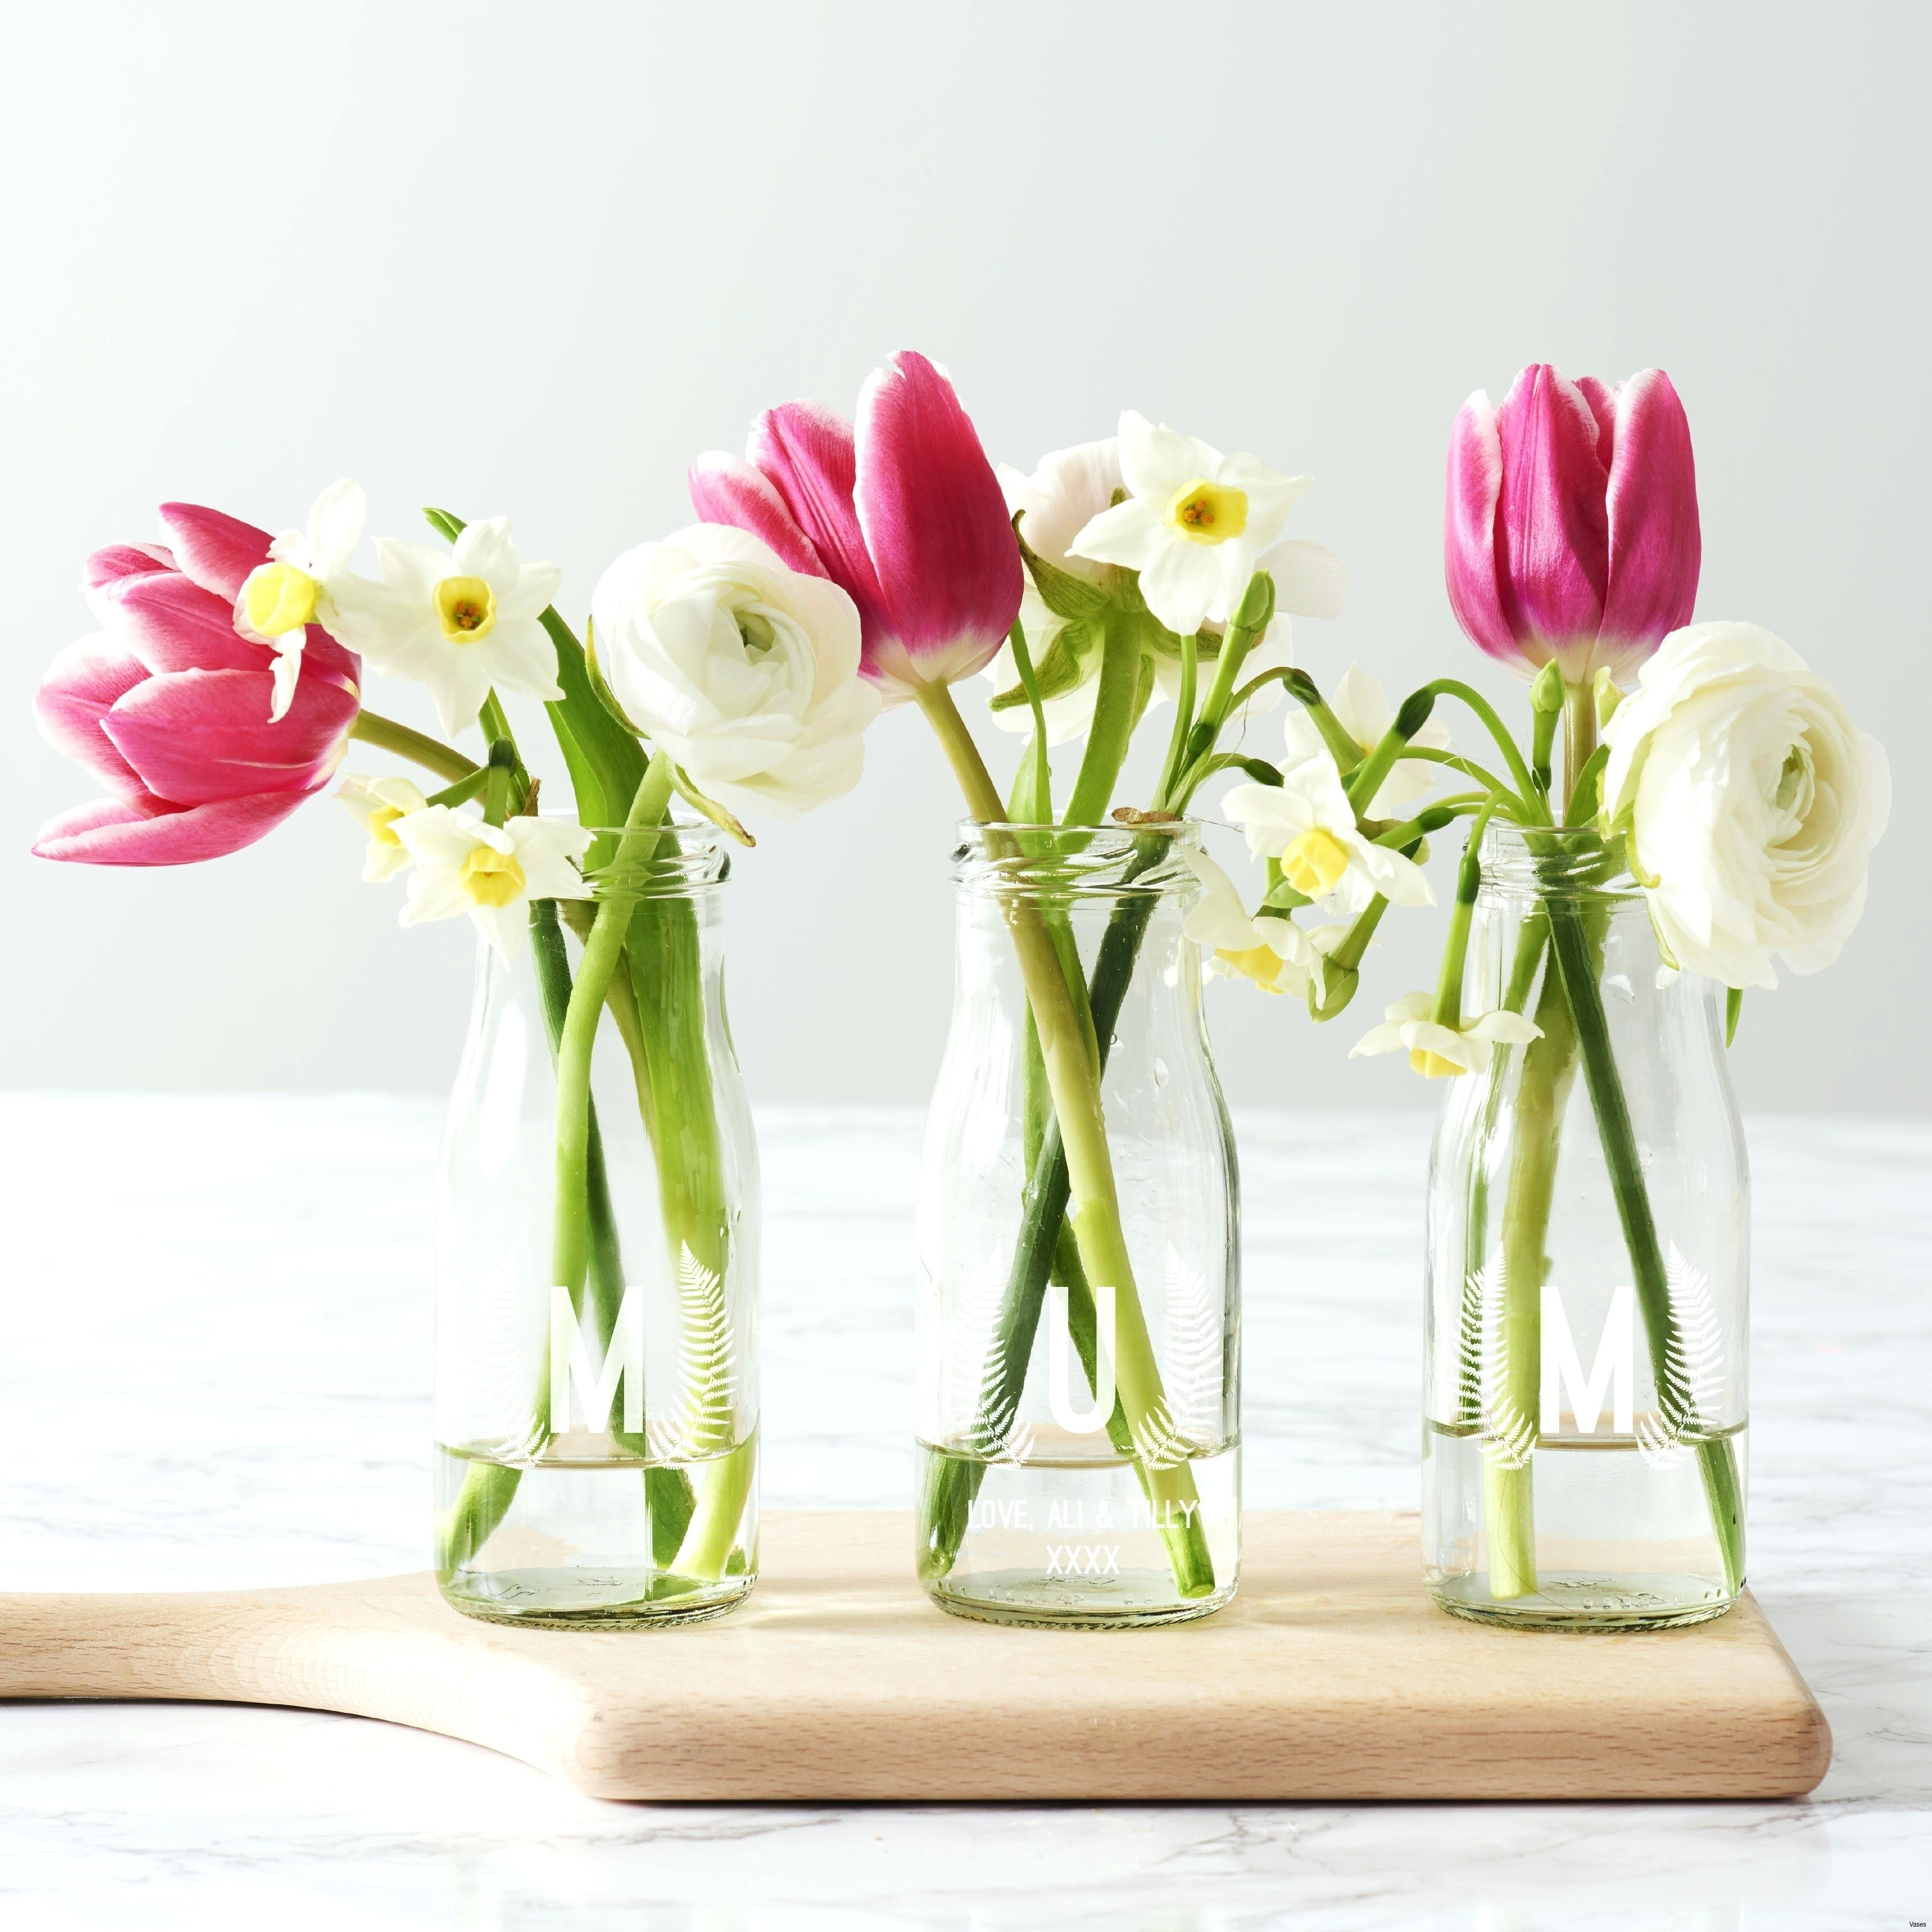 27 Recommended Flower Bud Vases wholesale 2021 free download flower bud vases wholesale of cheap wedding favors in bulk fresh bud vases wholesale fresh awesome for cheap wedding favors in bulk awesome bud vases wholesale fresh awesome wedding favors b